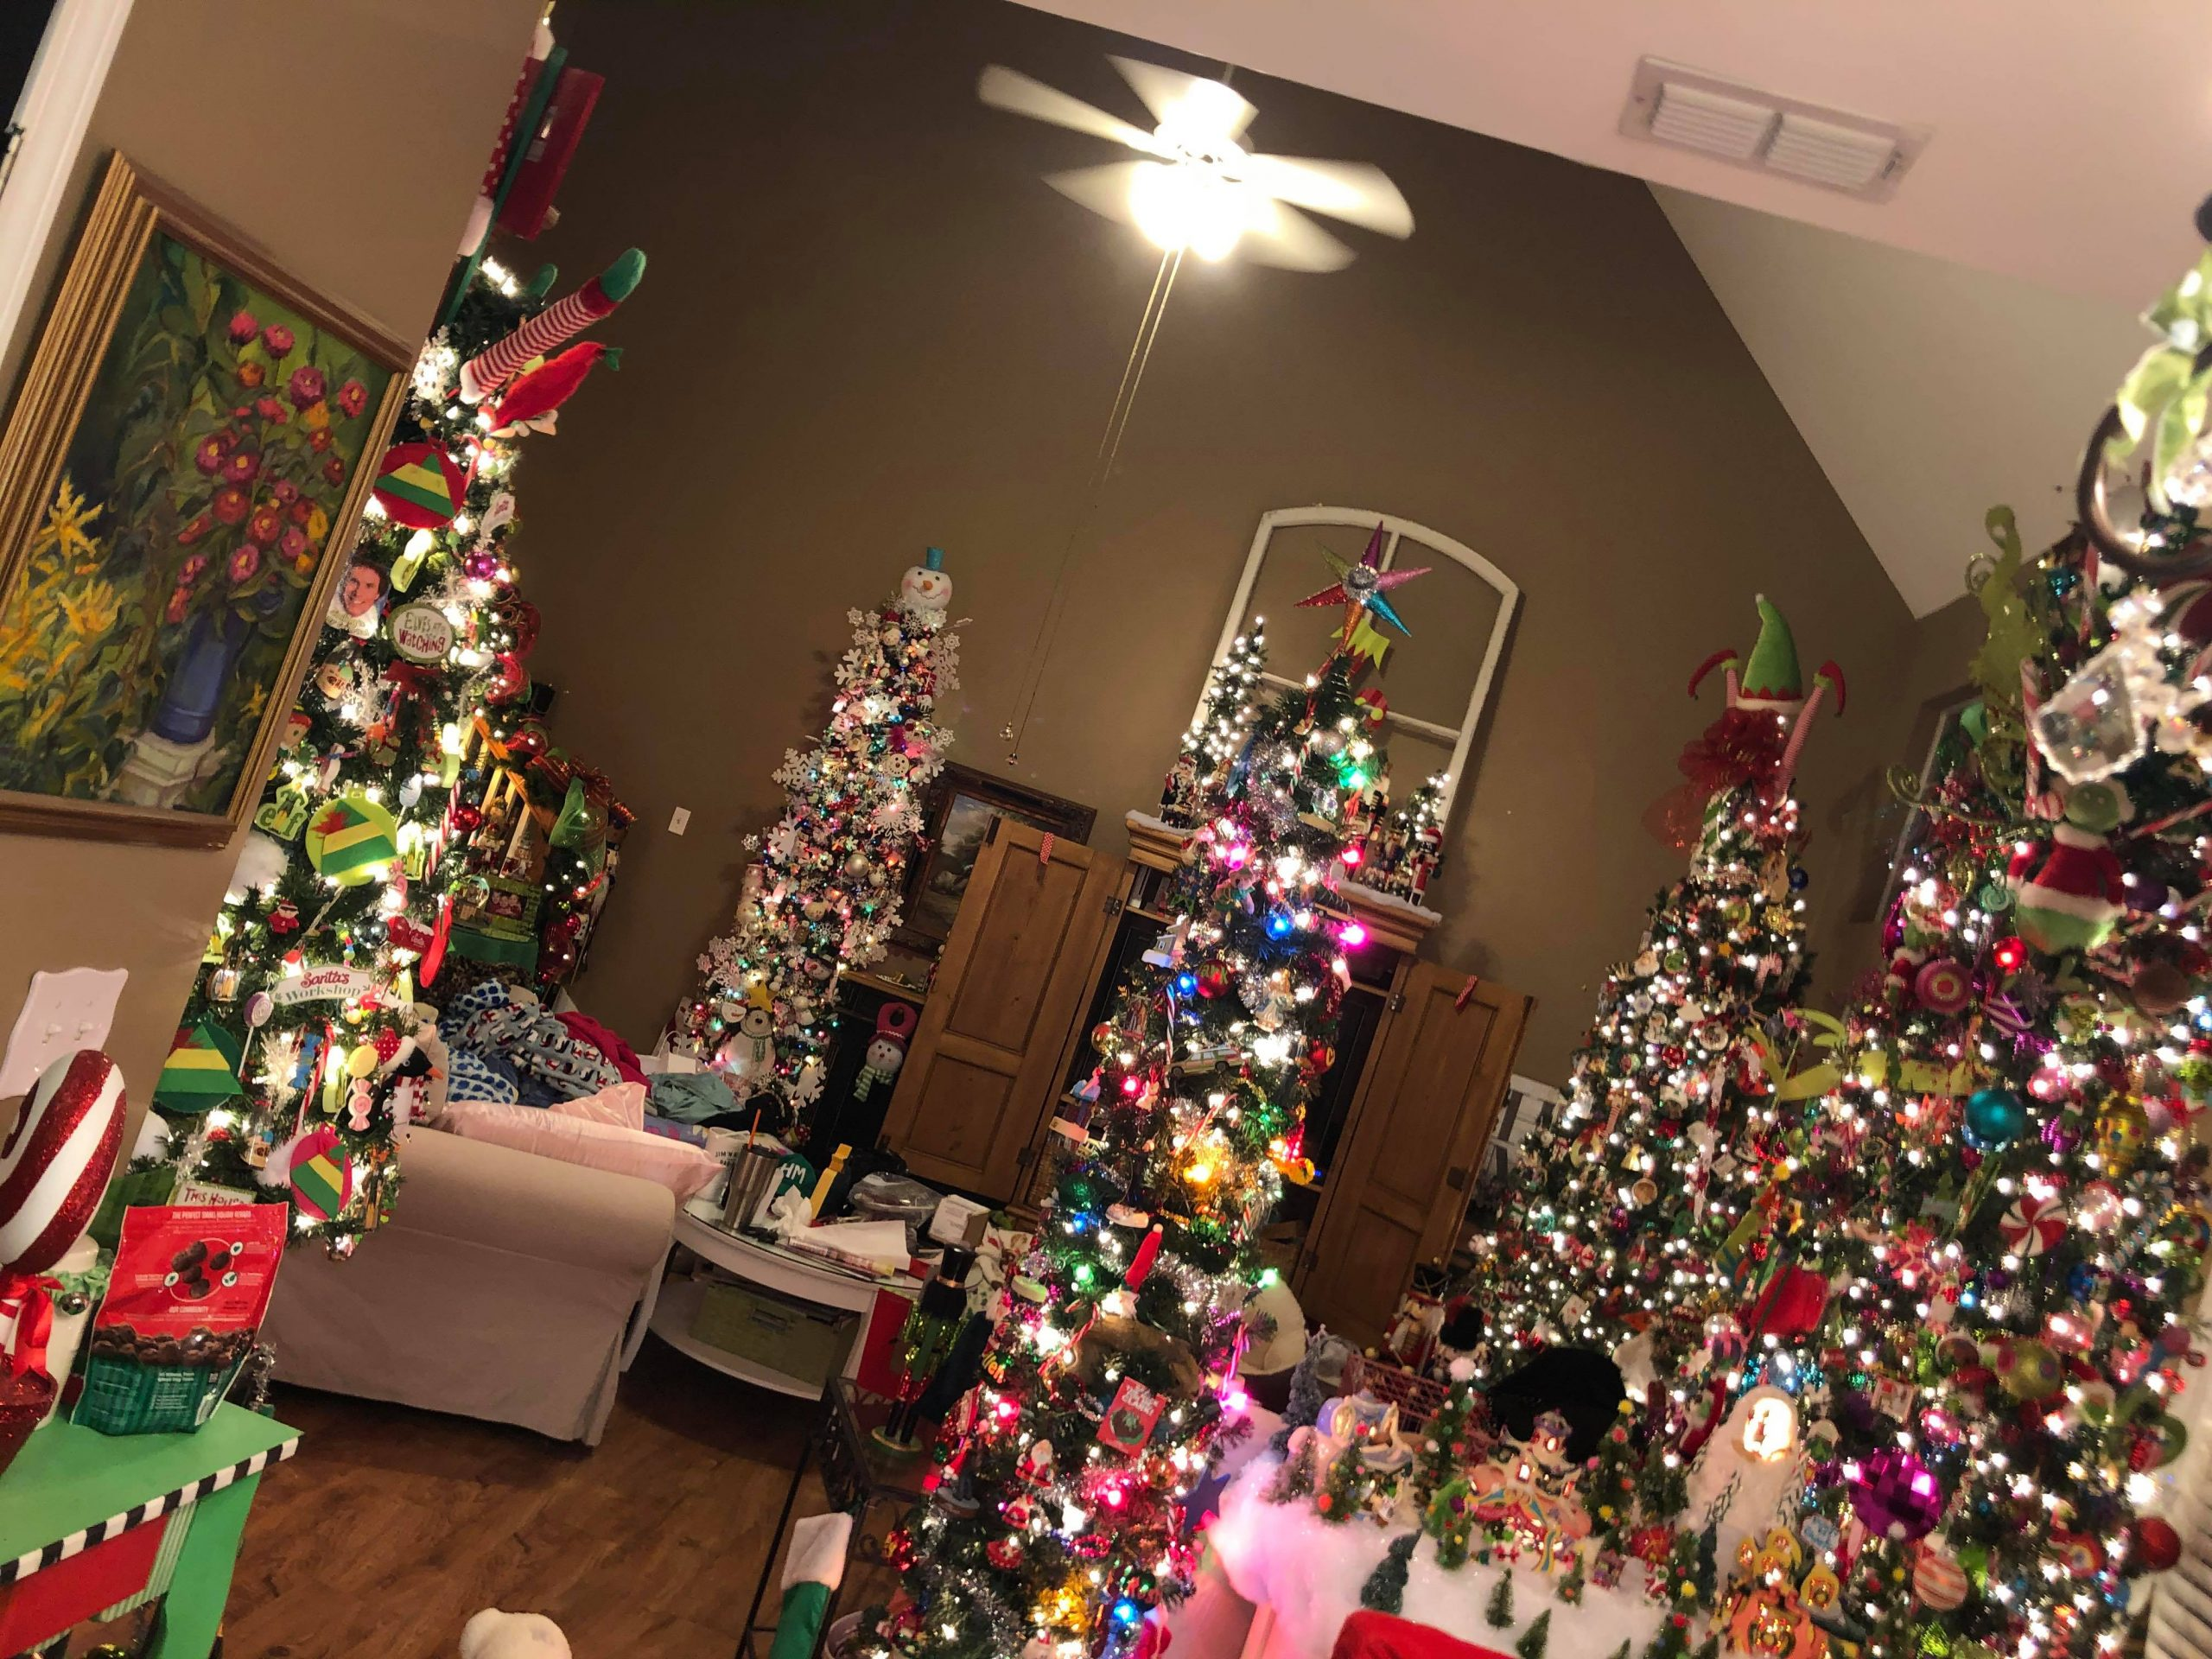 GALLERY: Trussville home has 32 Christmas trees inside